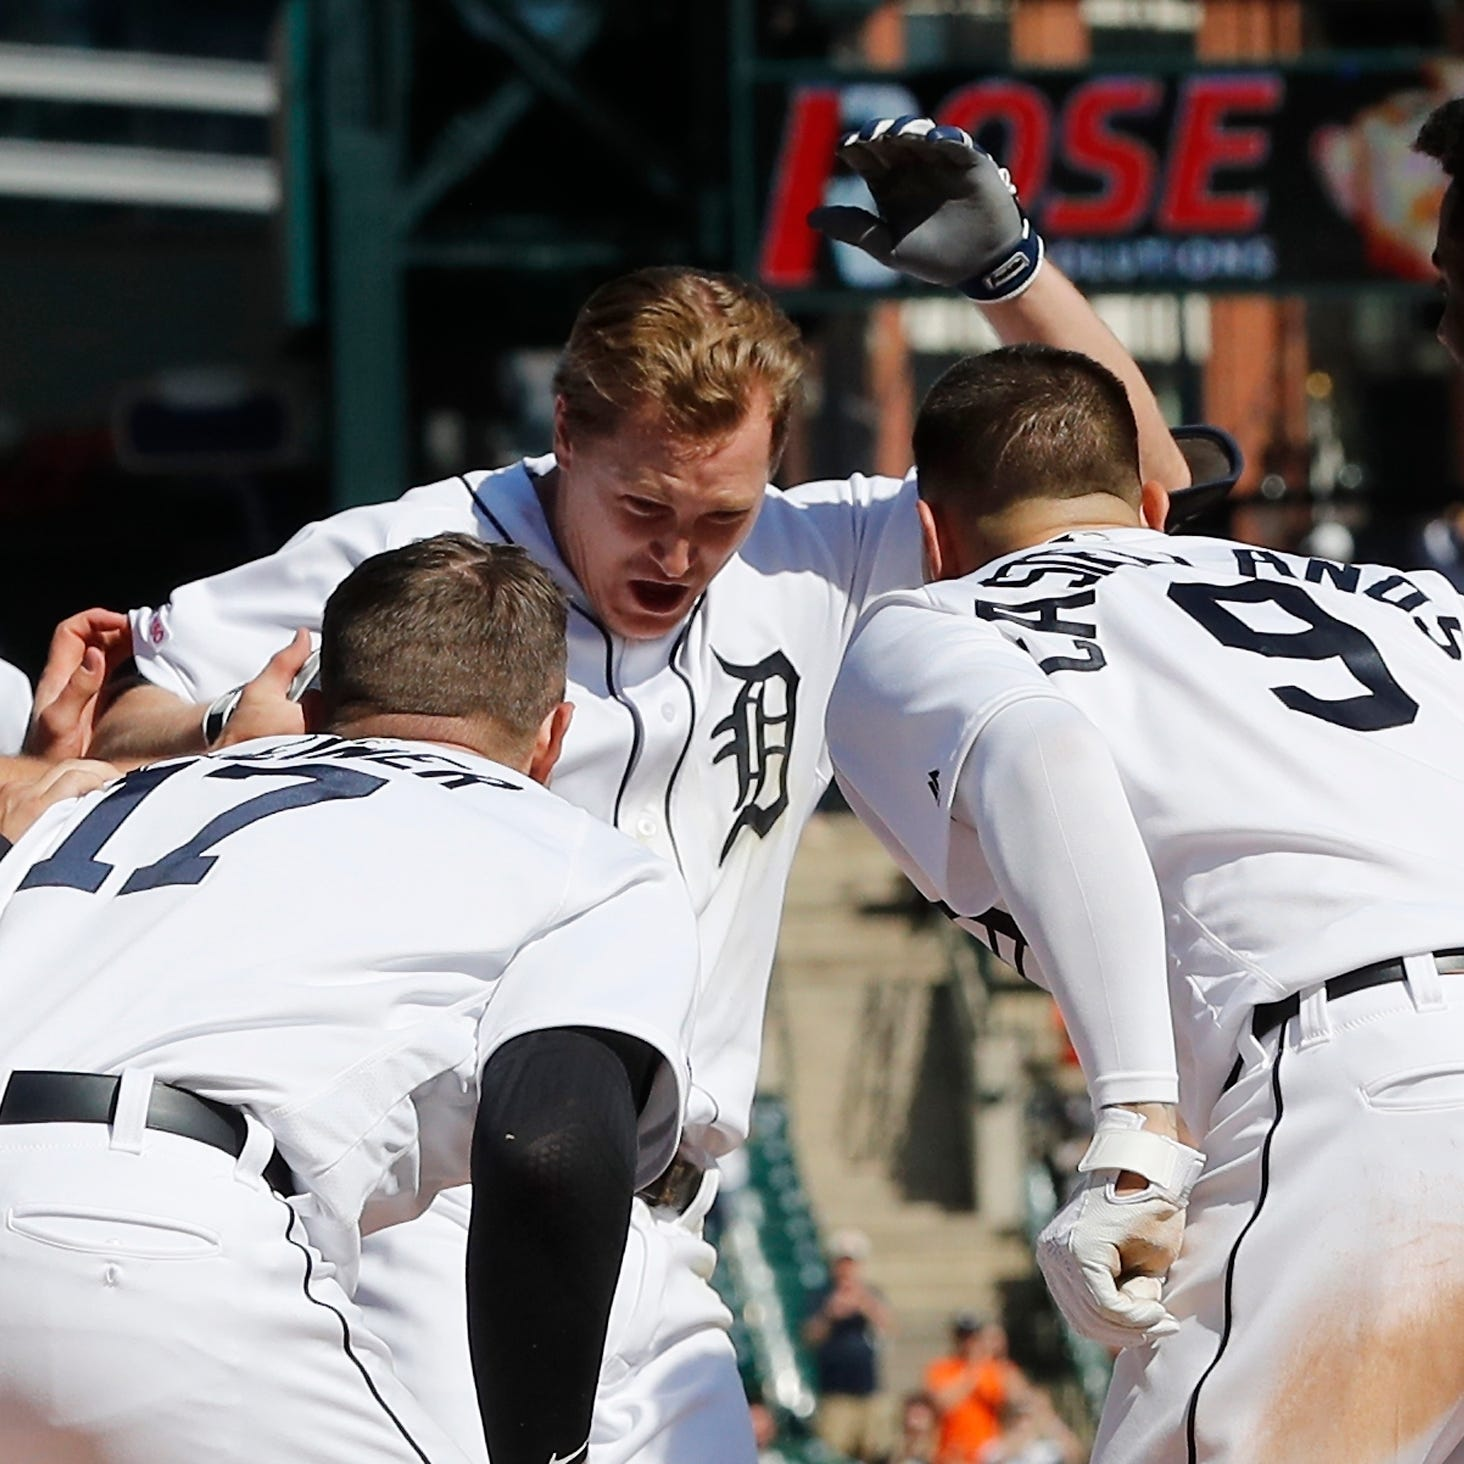 'Unreal': Brandon Dixon's walk-off blast helps Tigers take series against Royals